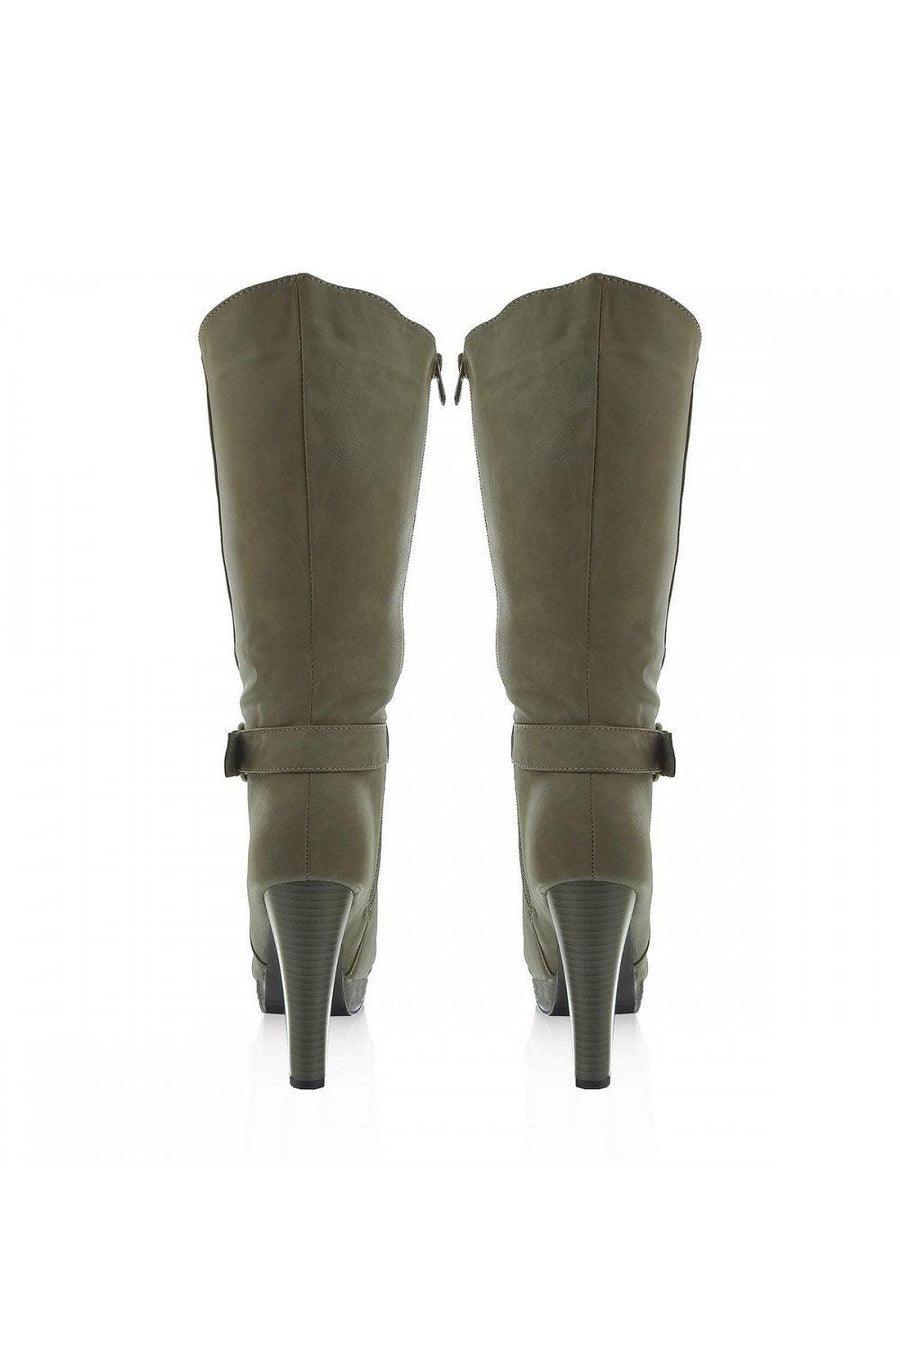 Heel boots 20393 Heppin-Over the Knee High Boots, Thigh High Boots-Heppin-40-TRESFANCY